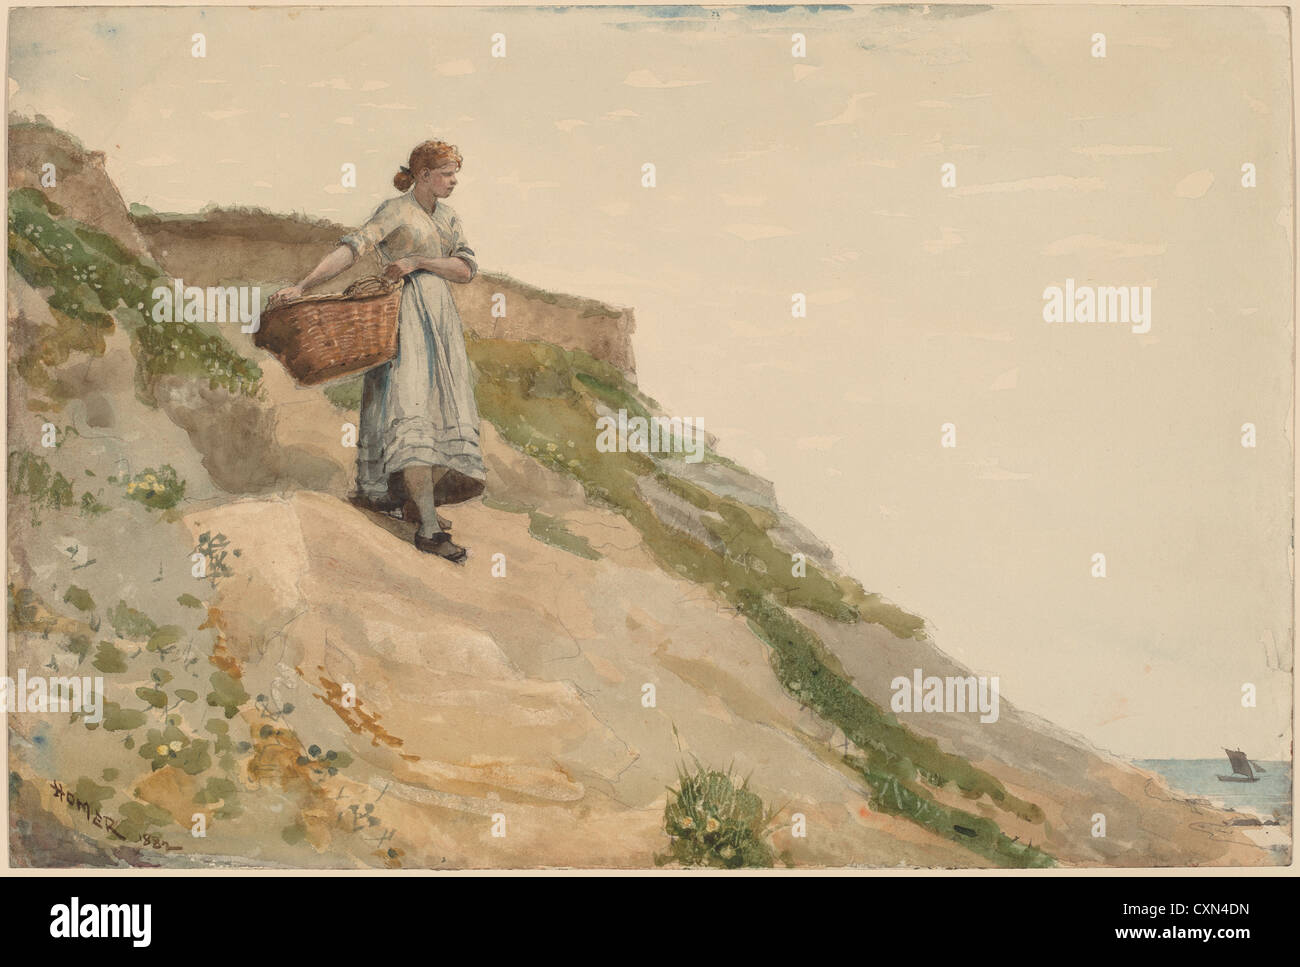 Winslow Homer, Girl Carrying a Basket, American, 1836 - 1910, 1882, watercolor over graphite - Stock Image